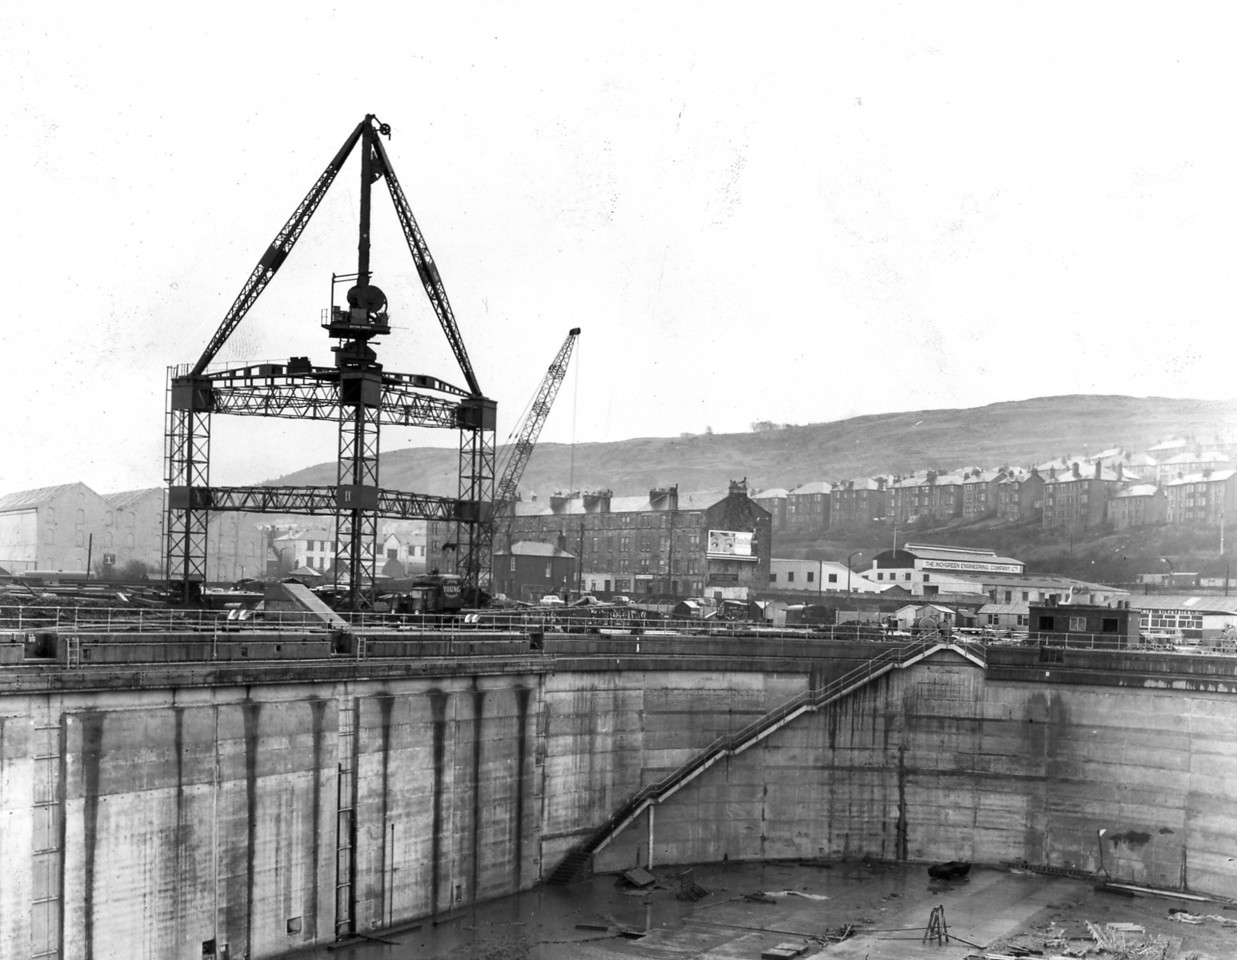 D128	Arch staircases completed - erection of 15 ton crane commenced  3/2/1964